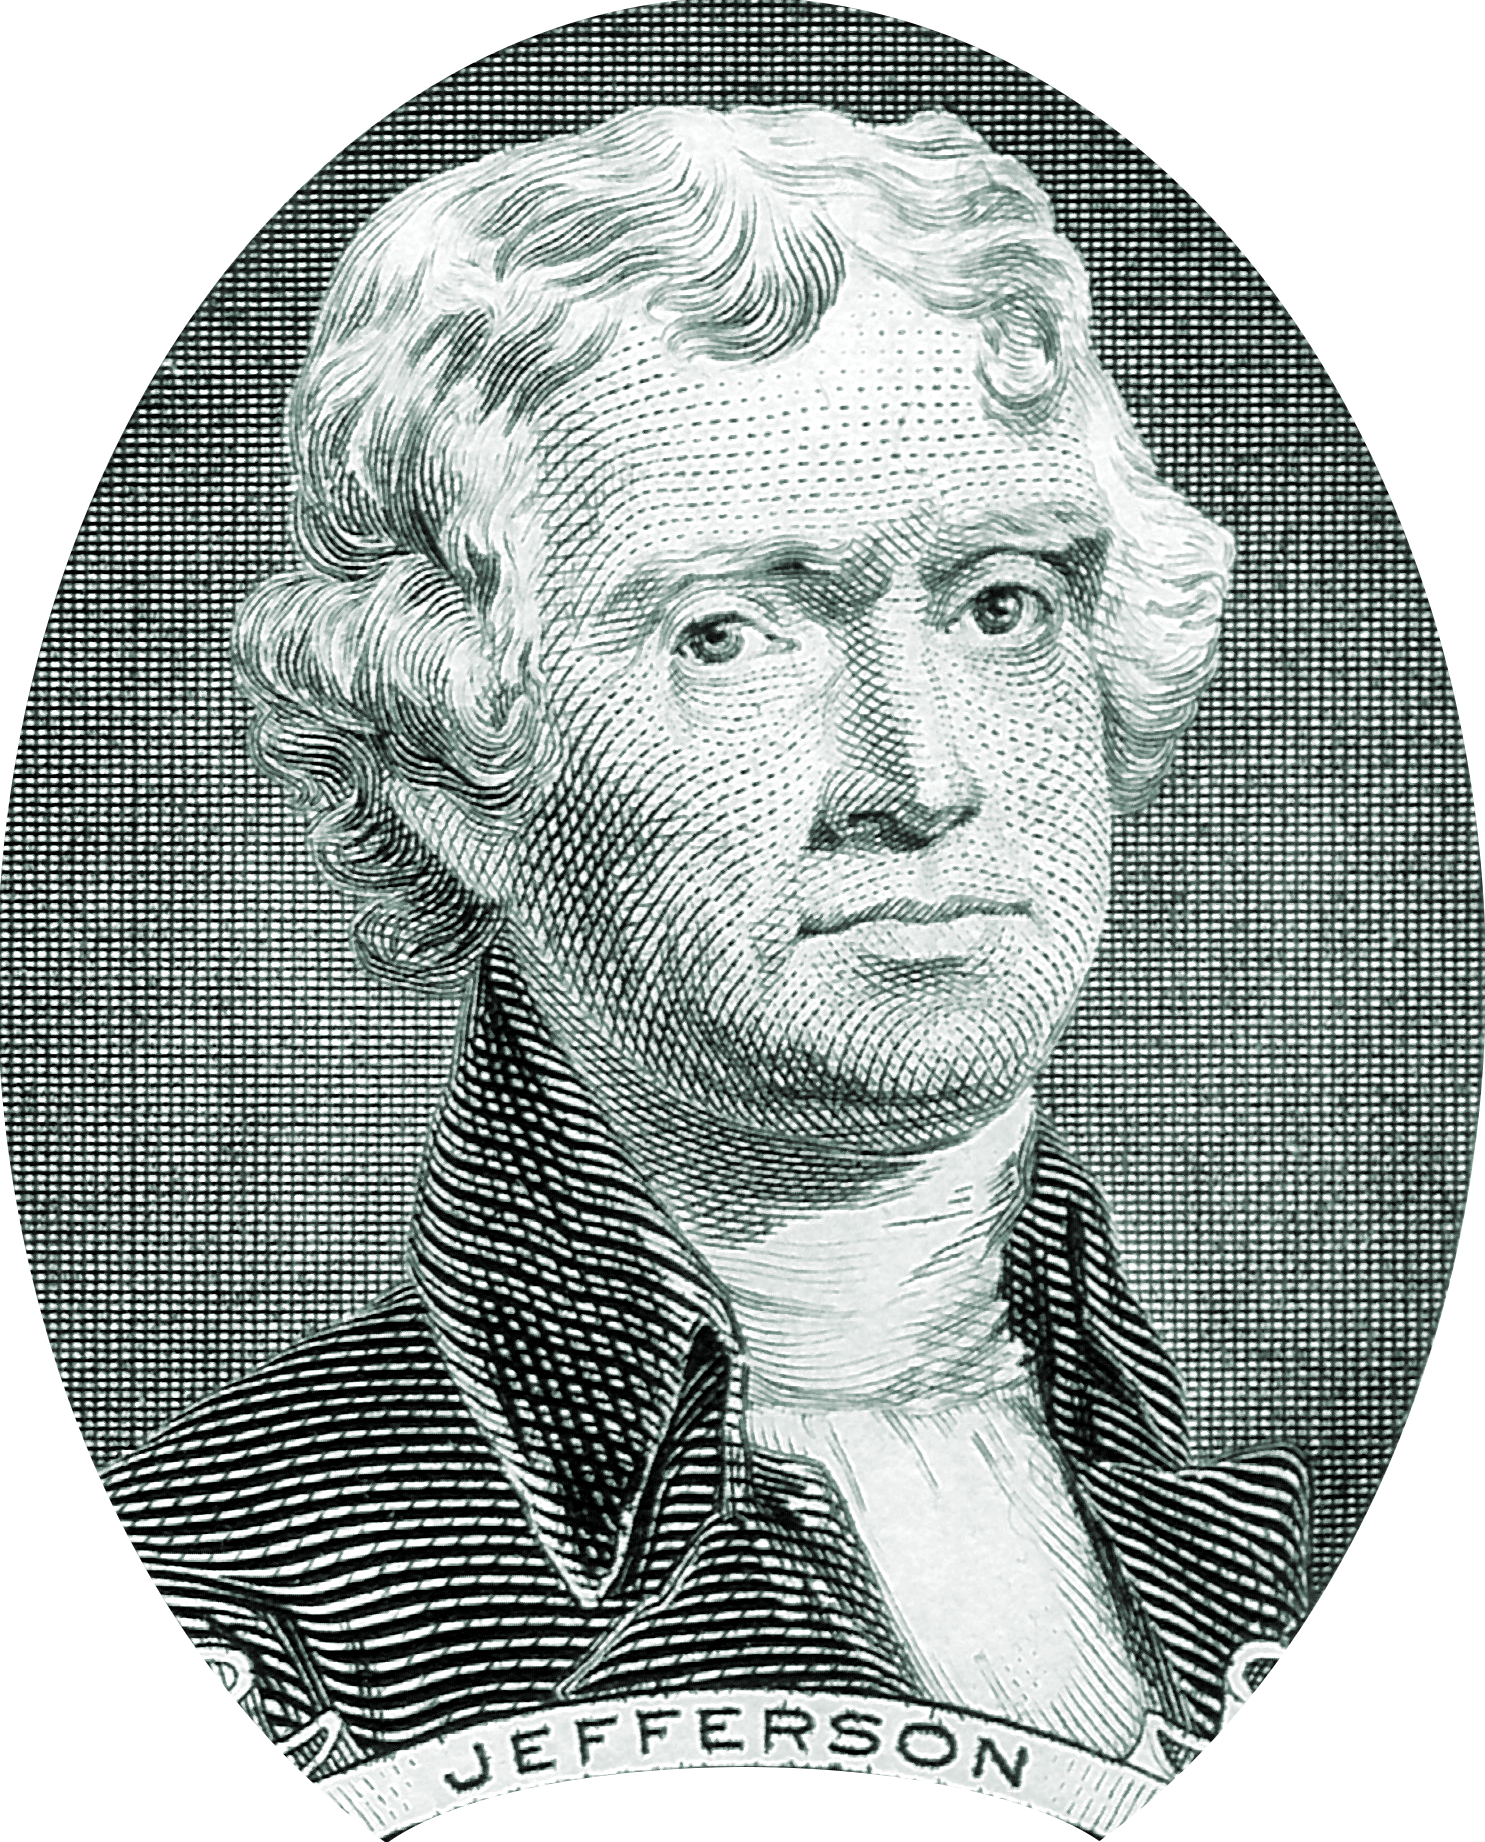 an analysis of the ideologies of thomas jefferson and alexander hamilton in the united states In addition hamilton was suggesting and planning central bank of the united states he made argument that for jefferson and hamilton were sharing with other various basic ideologies both of them desired that they would employ great effort in the organization's direction towards and effectual.